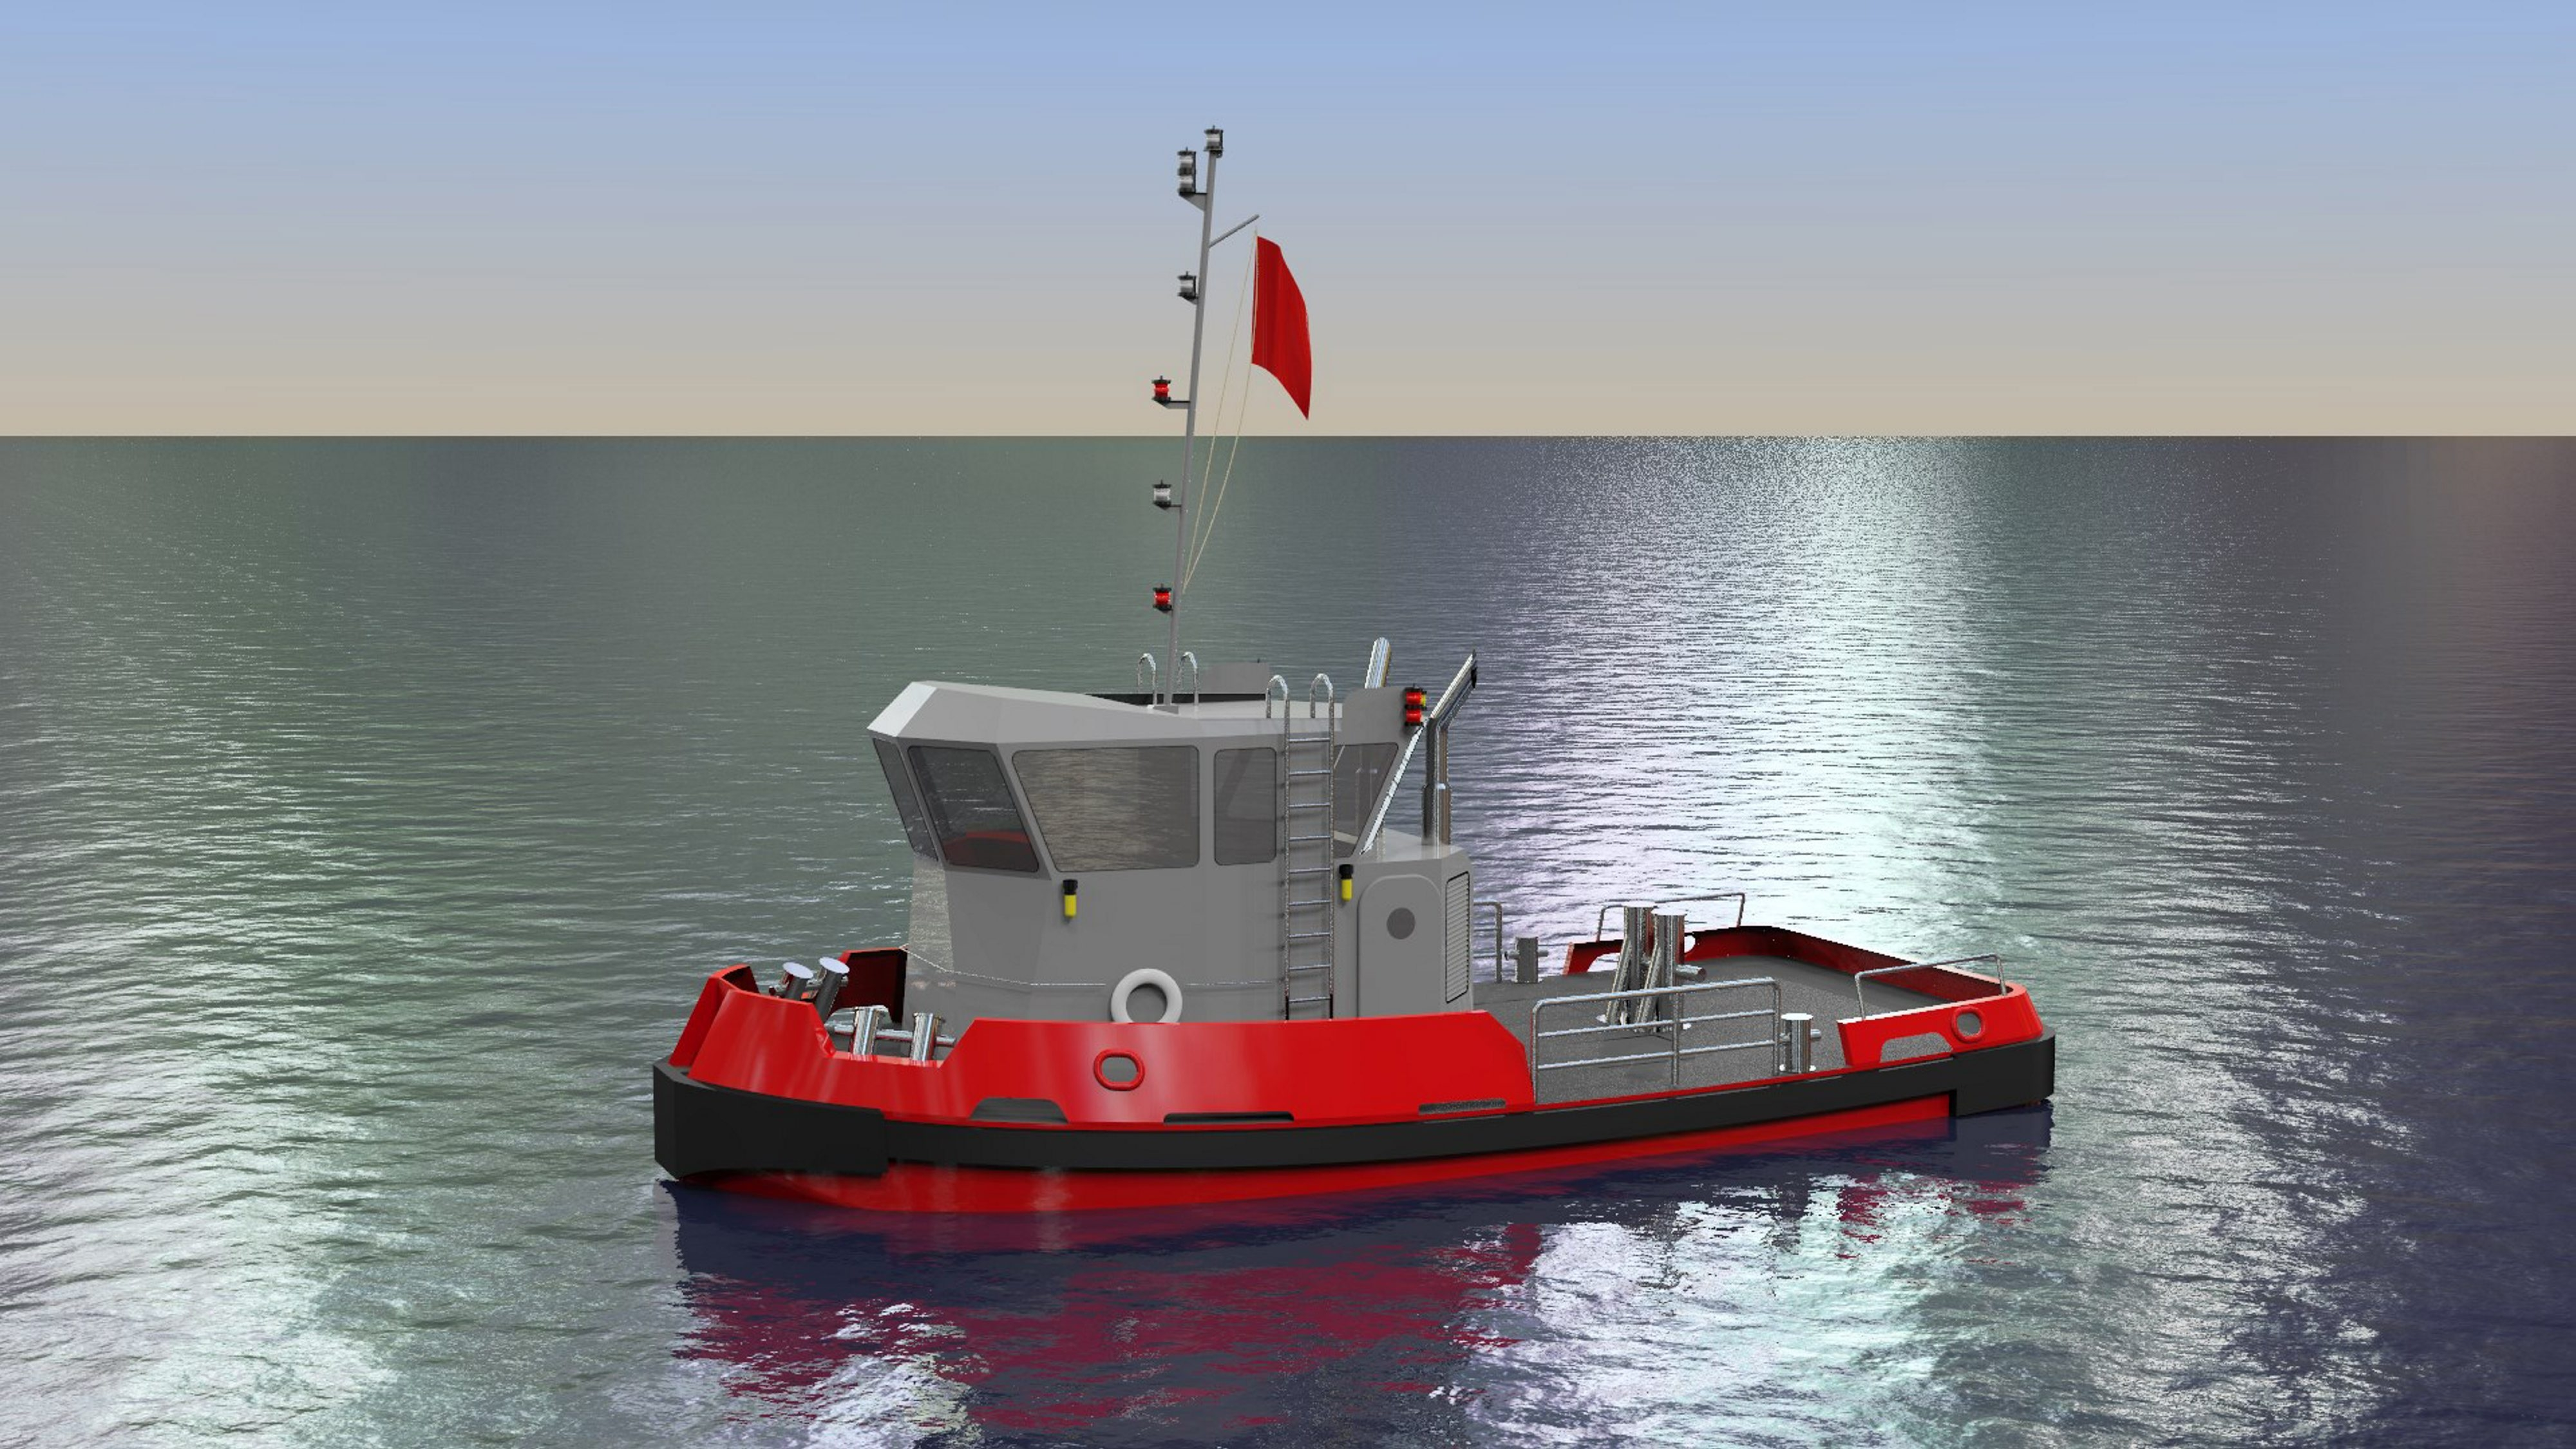 Computer rendering of one of two tugboats recently ordered by the New York Power Authority (NYPA) to replace two aging vessels—the Daniel Joncaire and the Breaker—that support the winter operations of NYPA's Niagara Hydroelectric Power Plant and the Sir Adam Beck Pumped Generating Station, owned by Ontario Power Generation.  (Credit: New York Power Authority)